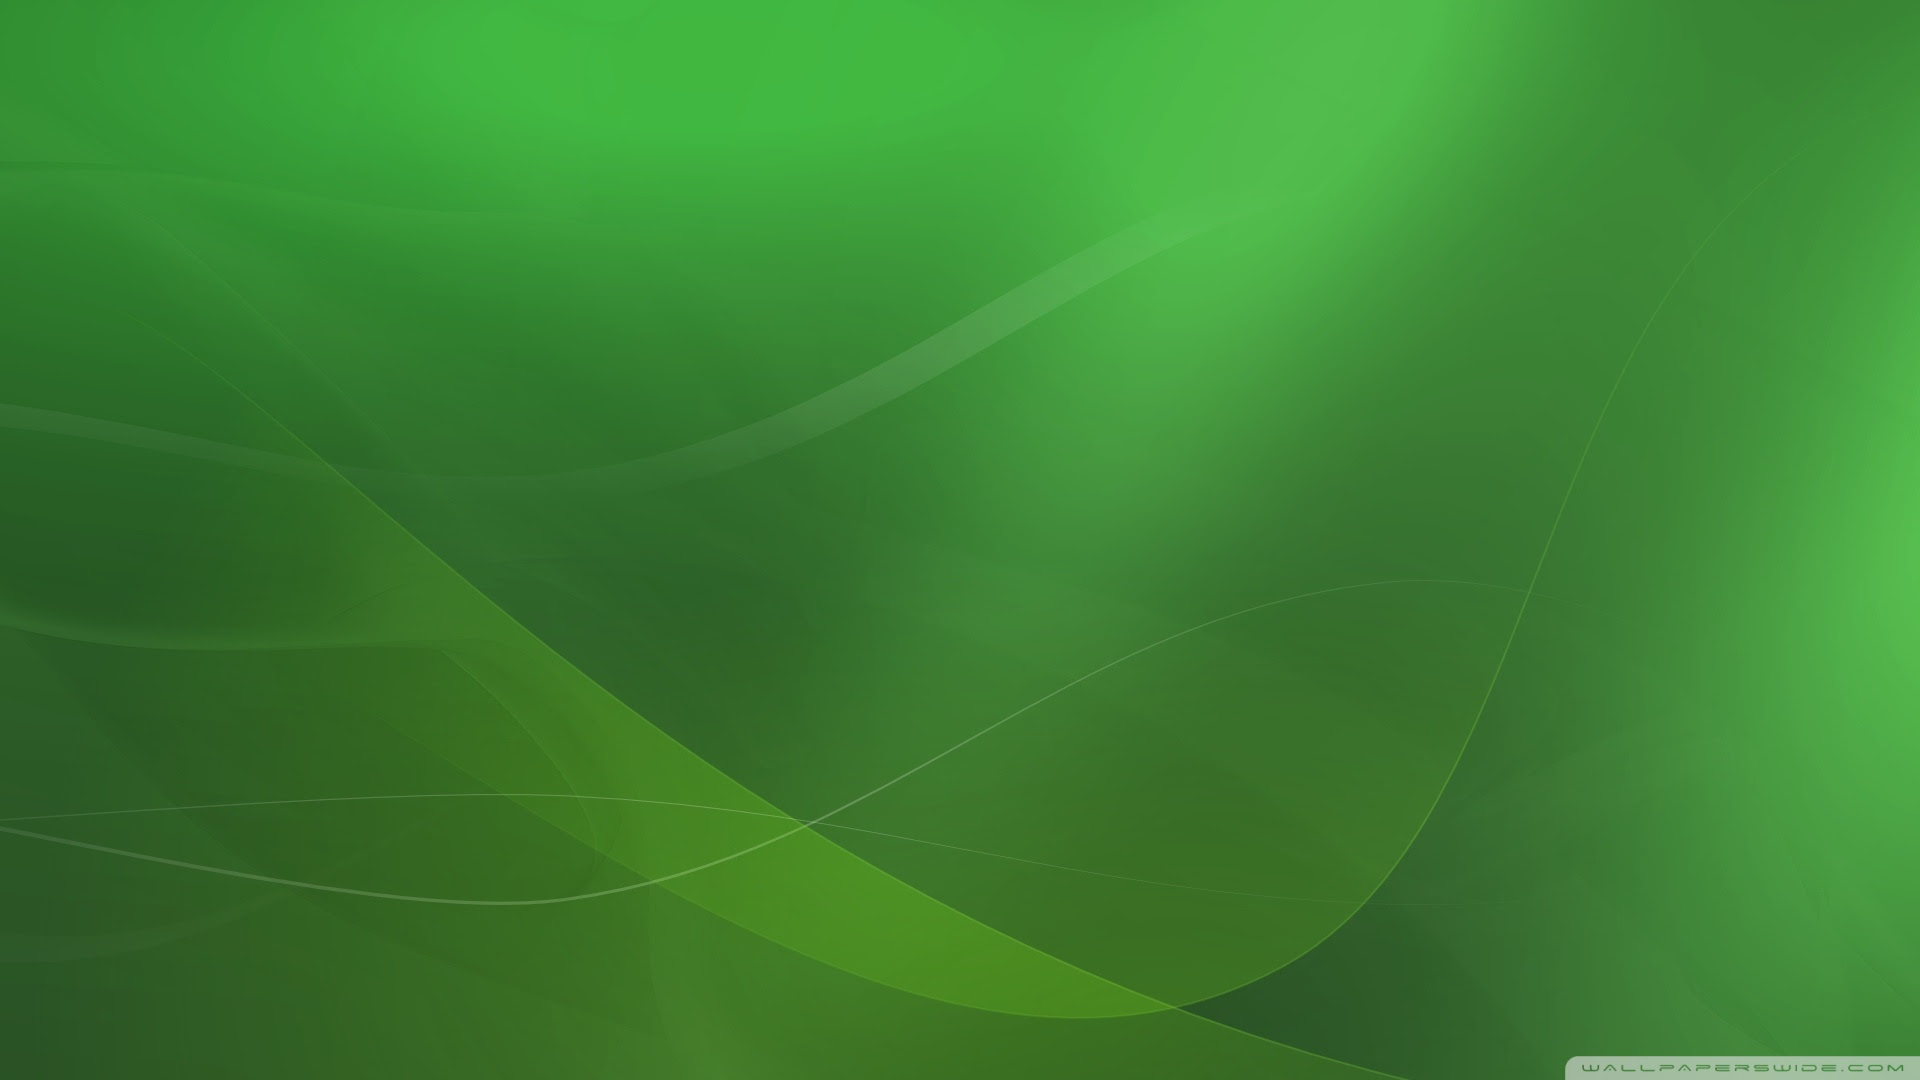 45 HD Green Wallpapers\/Backgrounds For Free Download